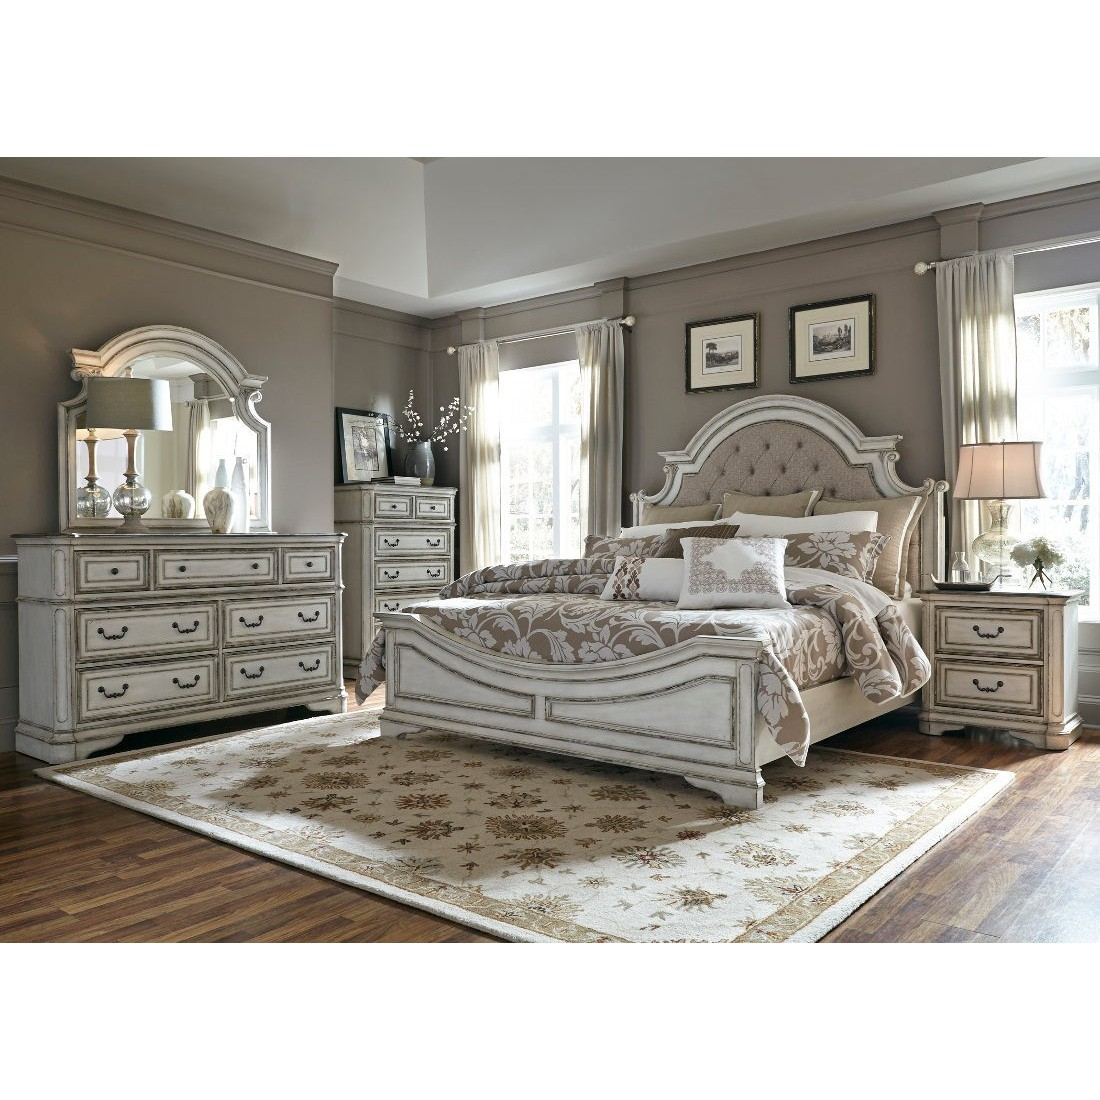 Liberty Magnolia Manor Upholstered Bedroom Set In Antique White intended for 3 Piece Magnolia Brown Panel Wall Decor Sets (Image 17 of 30)